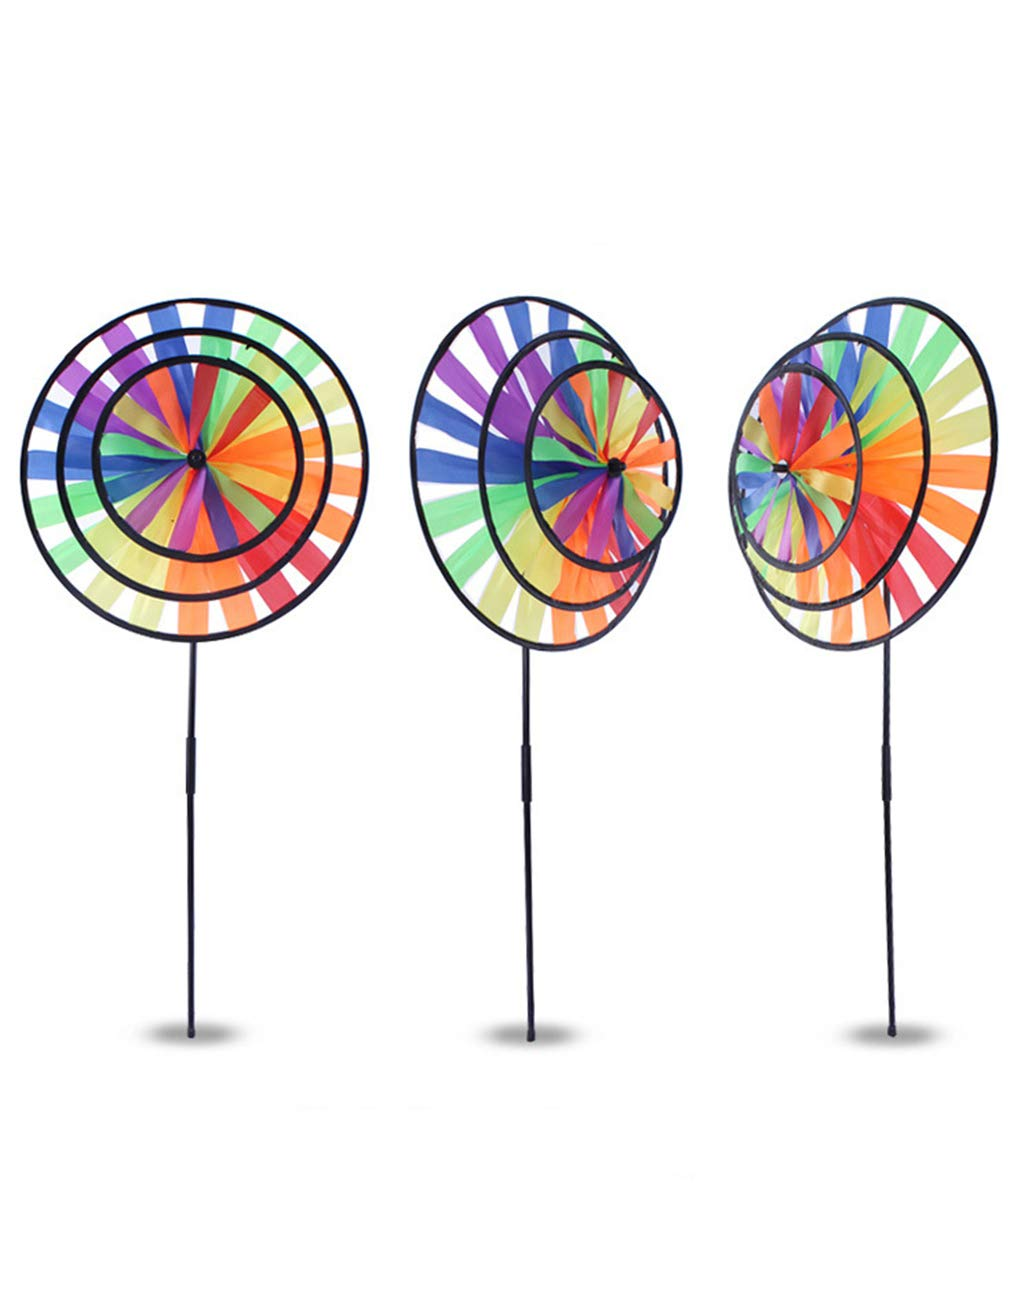 BrilliantDay 3 PCS Large Rainbow Windmill Wind Spinner Colourful Lawn Yard Garden Outdoor Decoration, 36CM Diametre